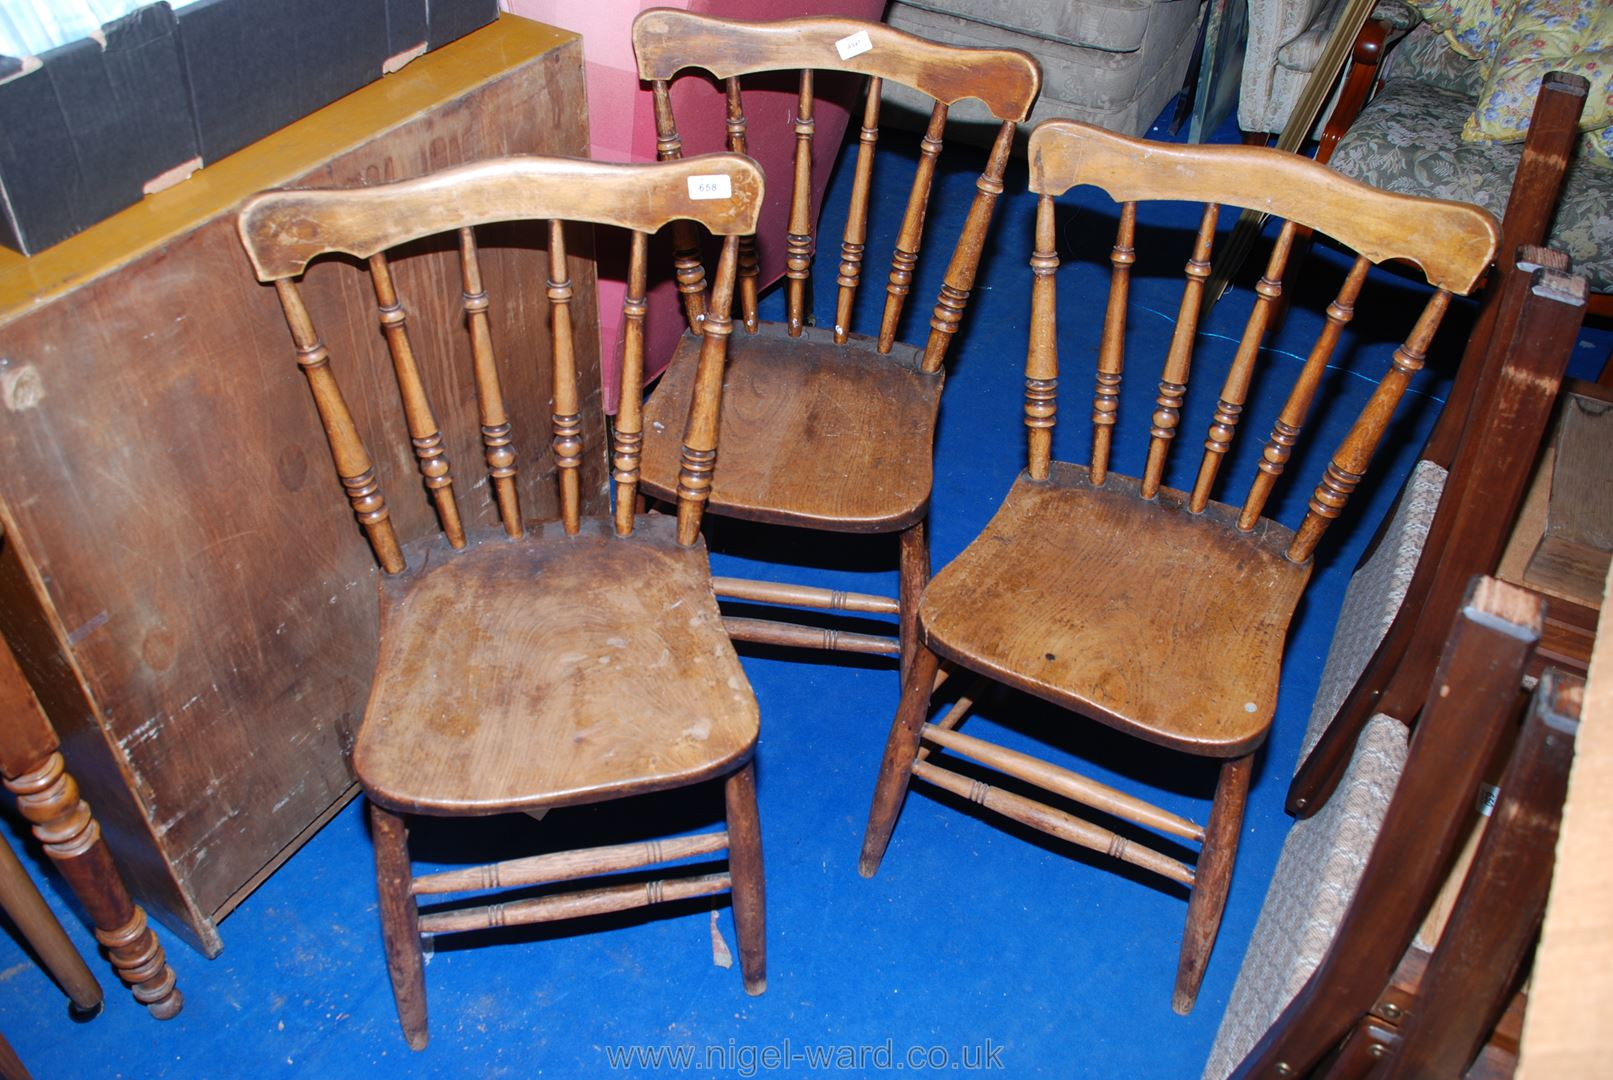 Three solid Elm seated stick-back kitchen chairs with turned back, leg and stretcher details.